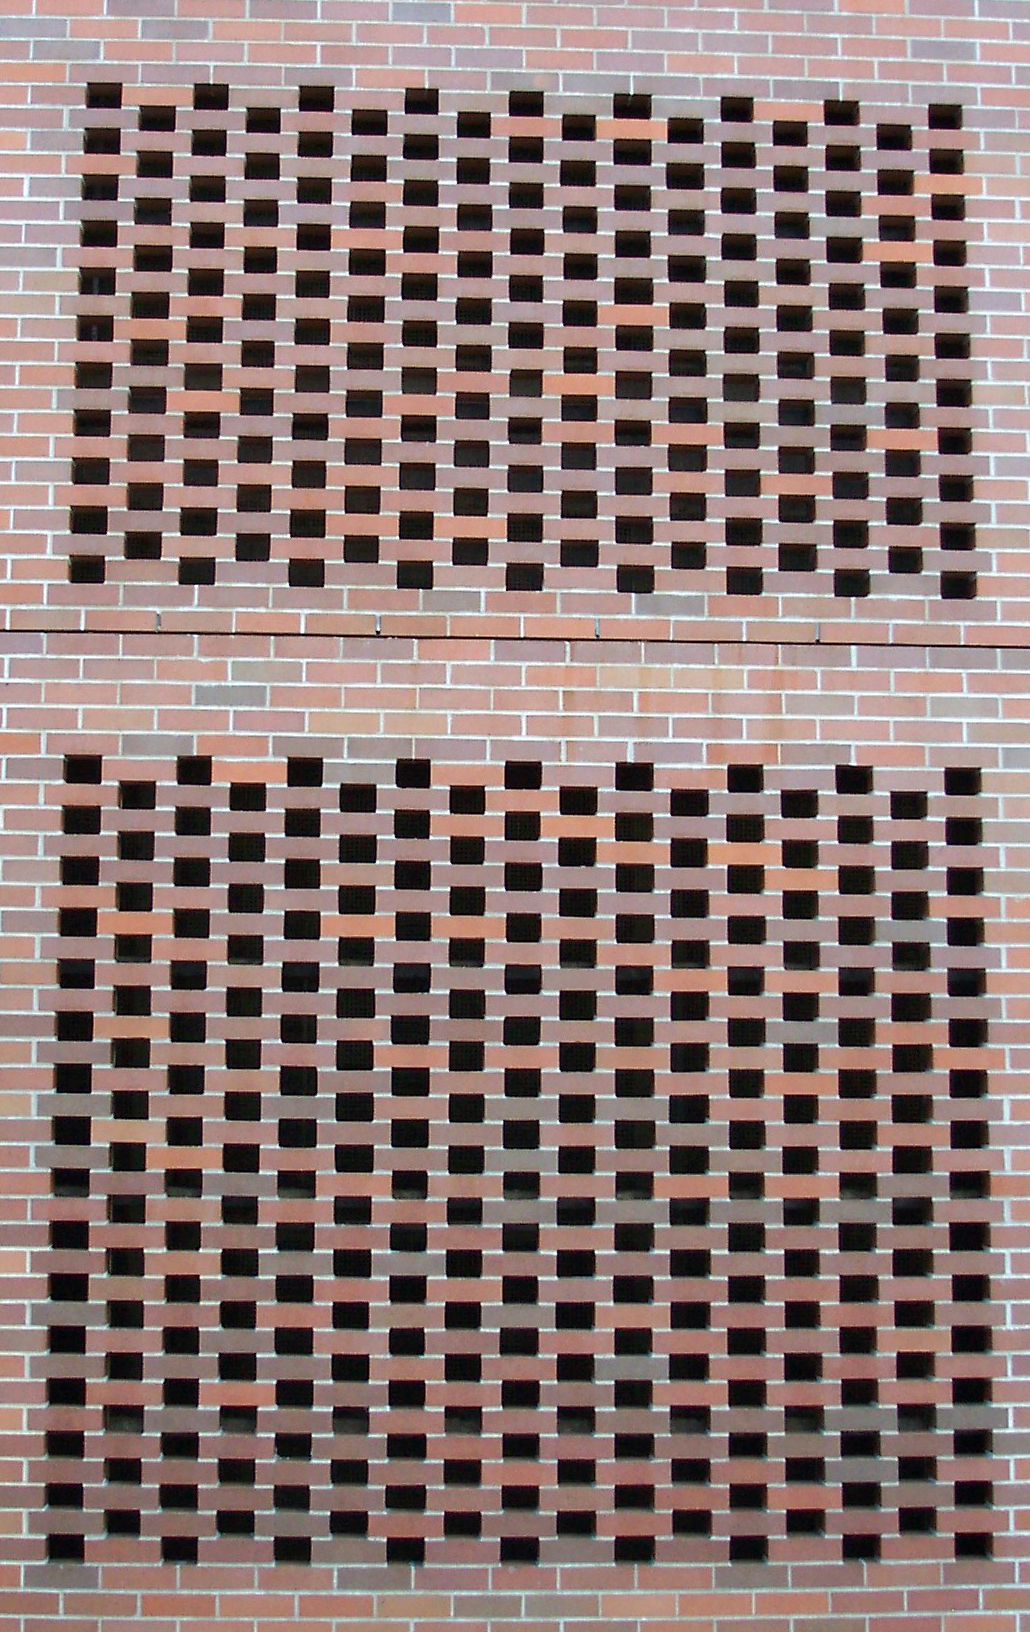 WTC-West-Screen-Brick.jpg